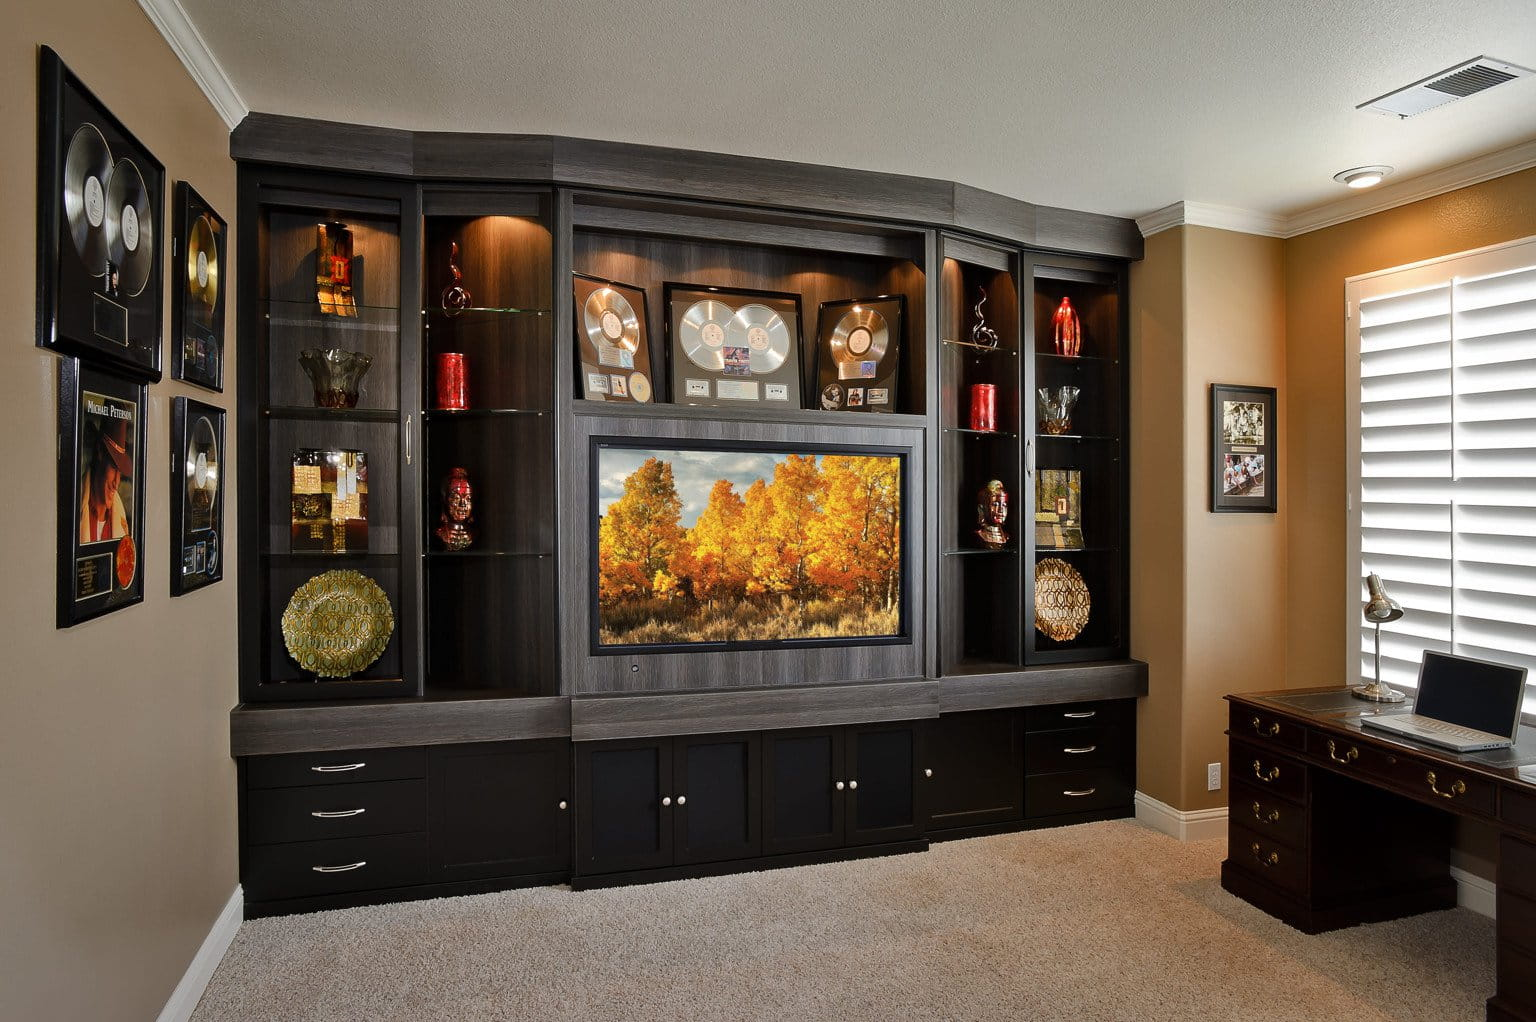 The Best Entertainment Center from Bay Home and Window